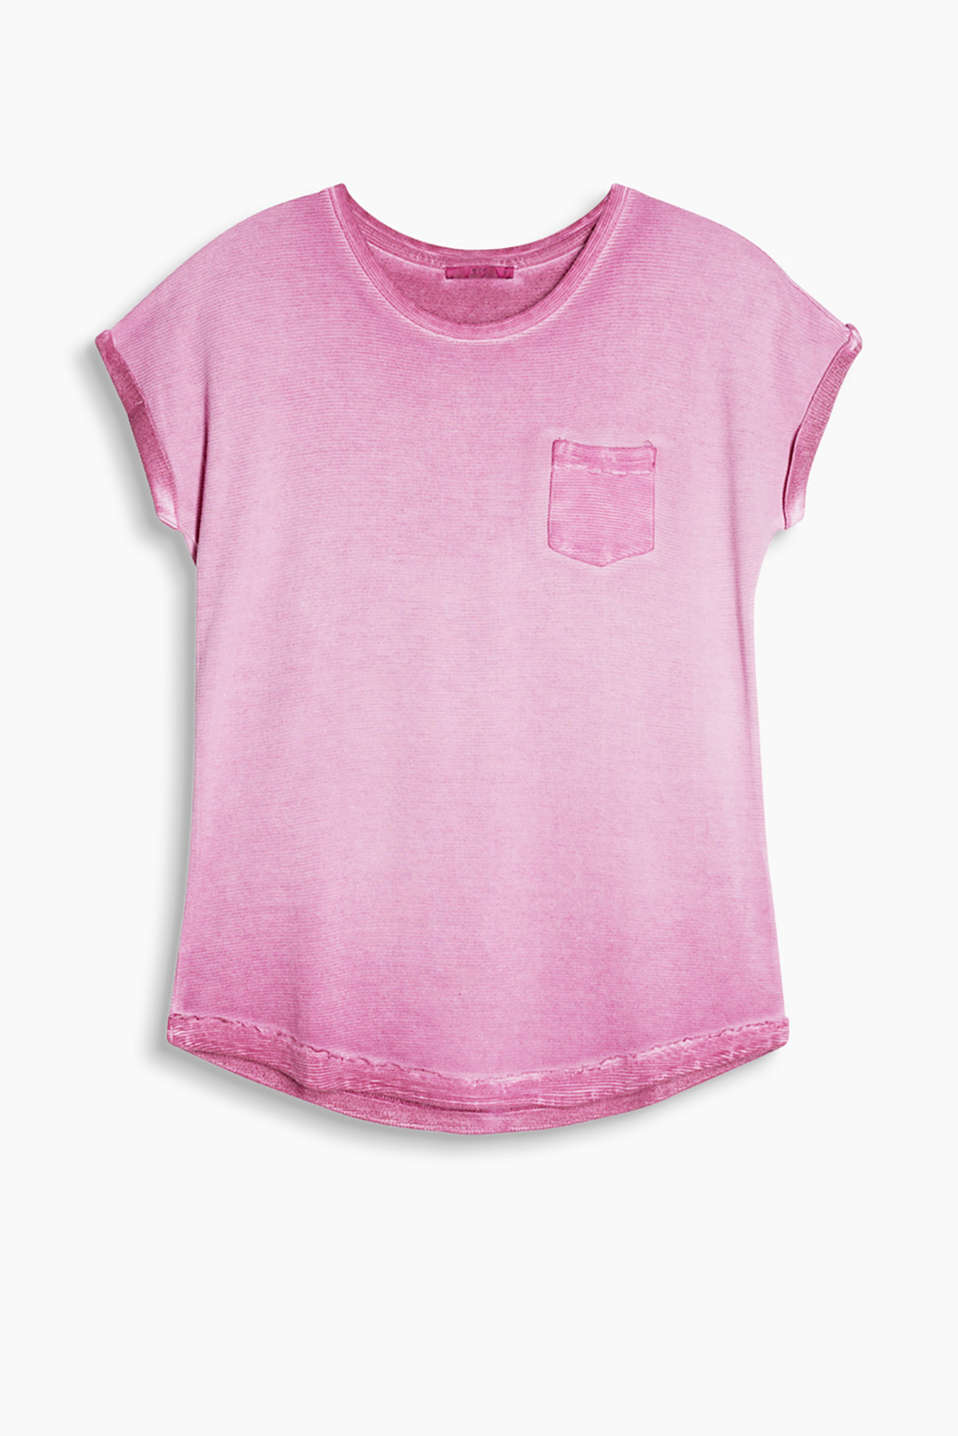 Casual T-shirt made of ribbed jersey featuring a cool, on-trend dye